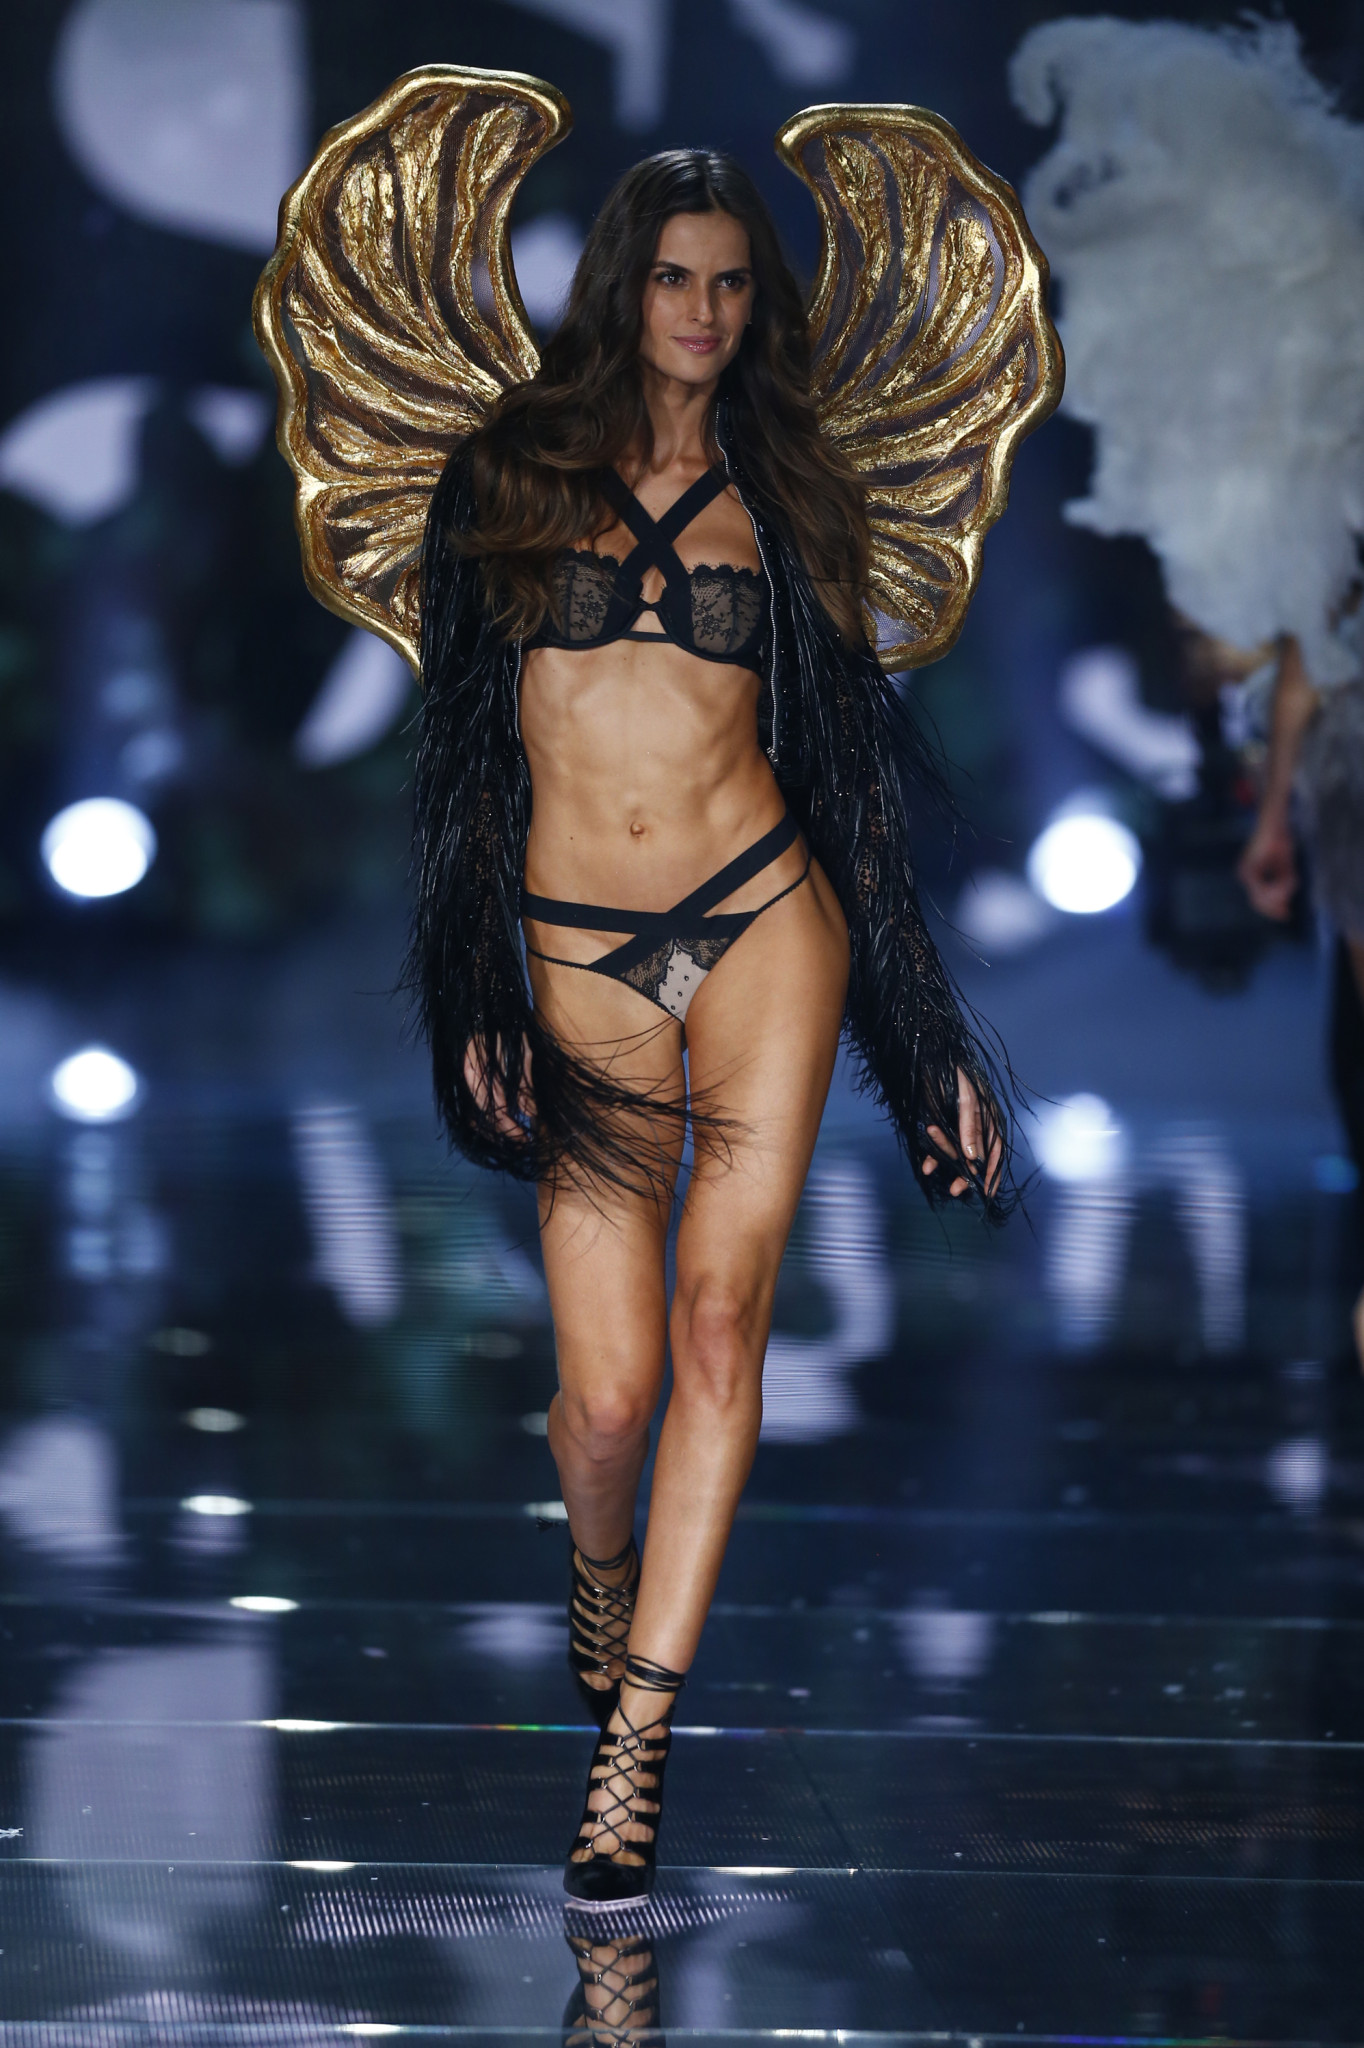 NEW YORK, NY - NOVEMBER 10: Model Izabel Goulart walks the runway during the 2015 Victoria's Secret Fashion Show at Lexington Avenue Armory on November 10, 2015 in New York City.